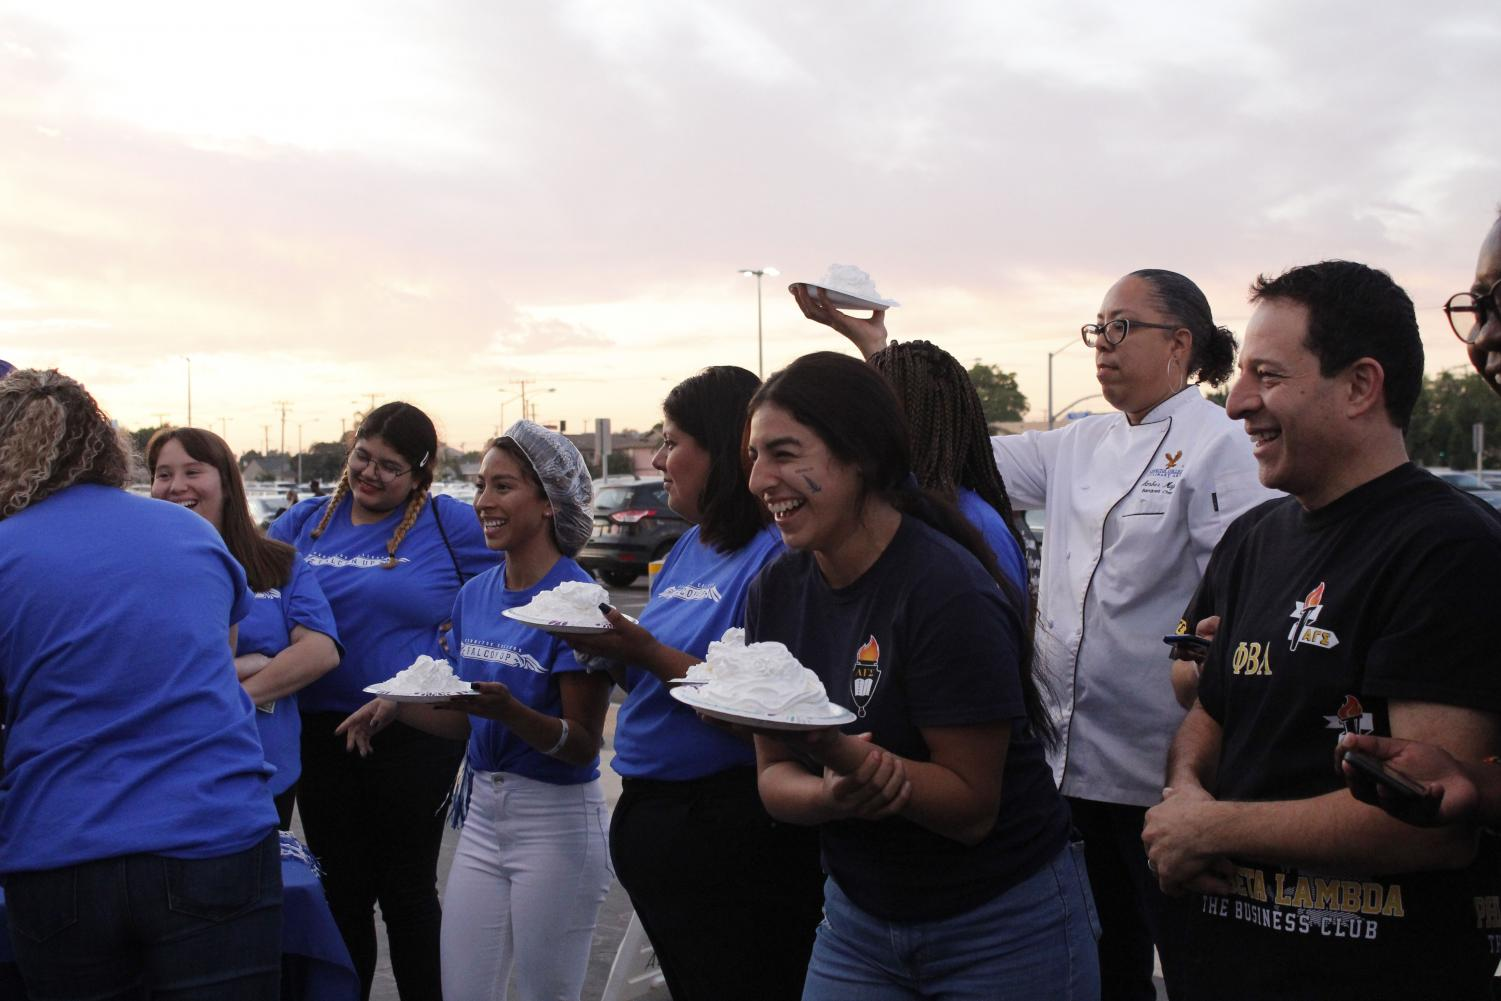 Faculty and staff members anticipate their turn in covering President of Cerritos College Jose Fierro in whip cream, making the most out of the $100 donation. The pie-in-the-face event raised $1,018 total for personal care products on Nov. 2, 2019.